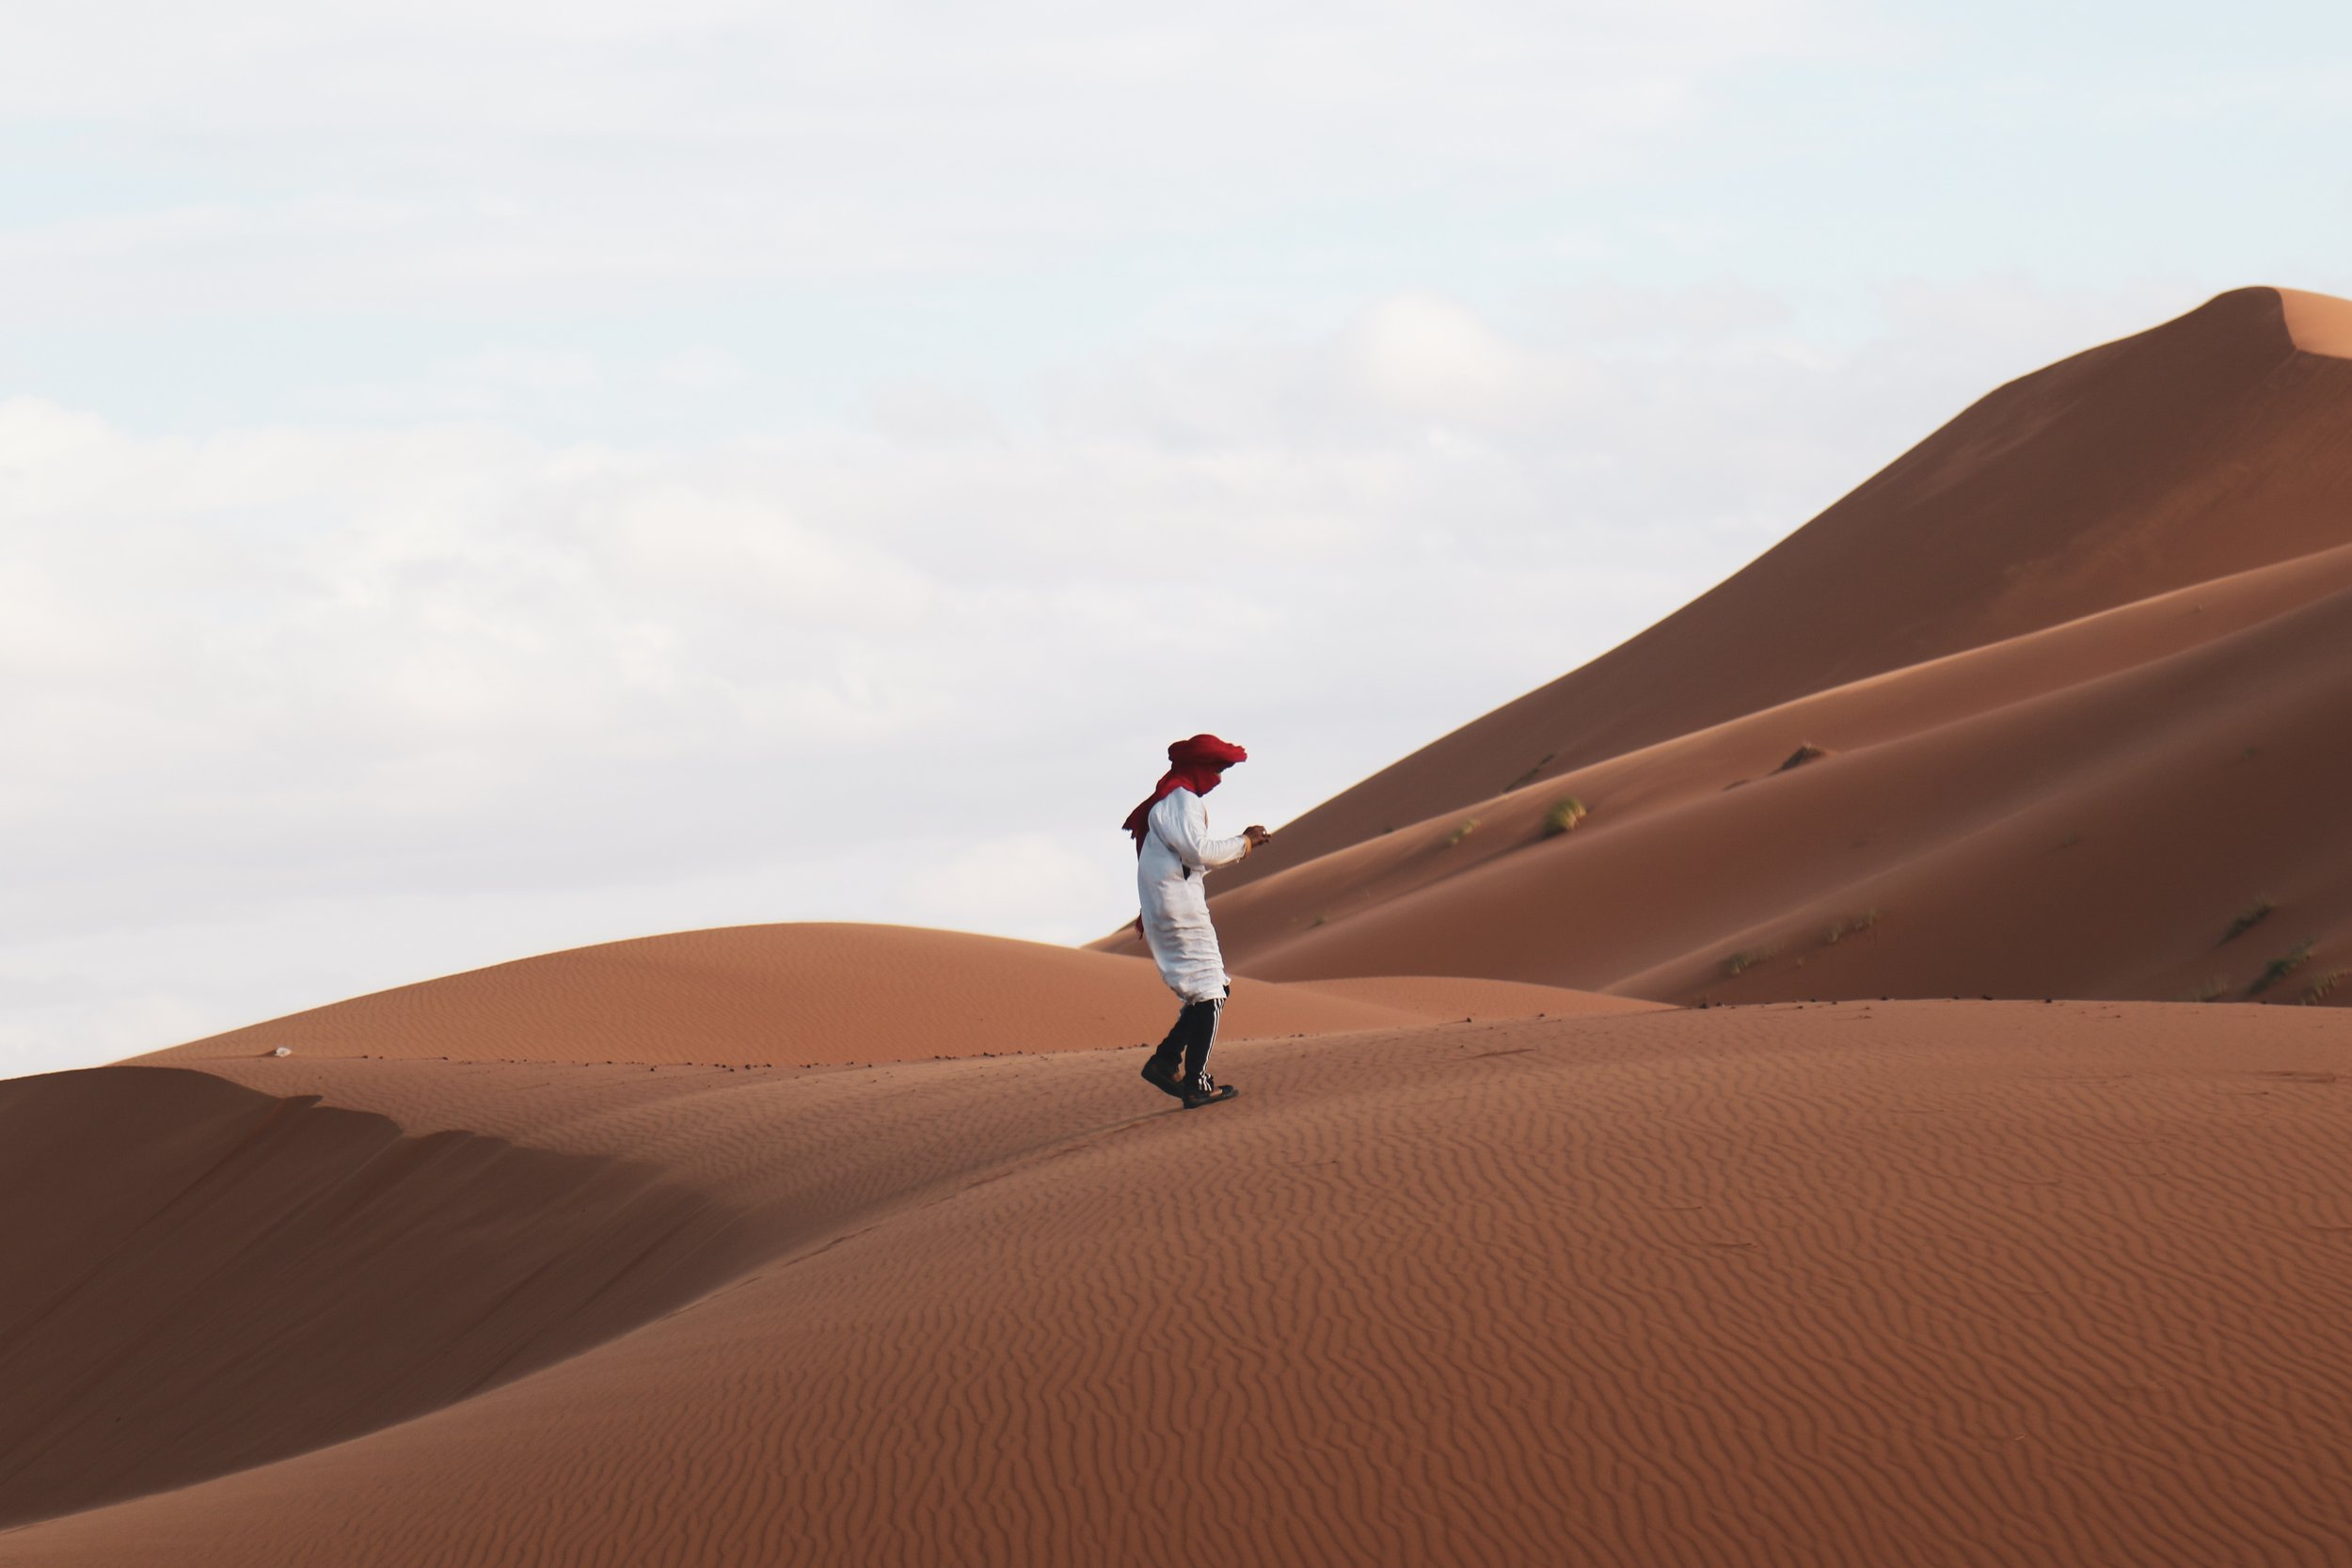 Visiting the Sahara Desert is one of the best things to do while in Northern Africa.